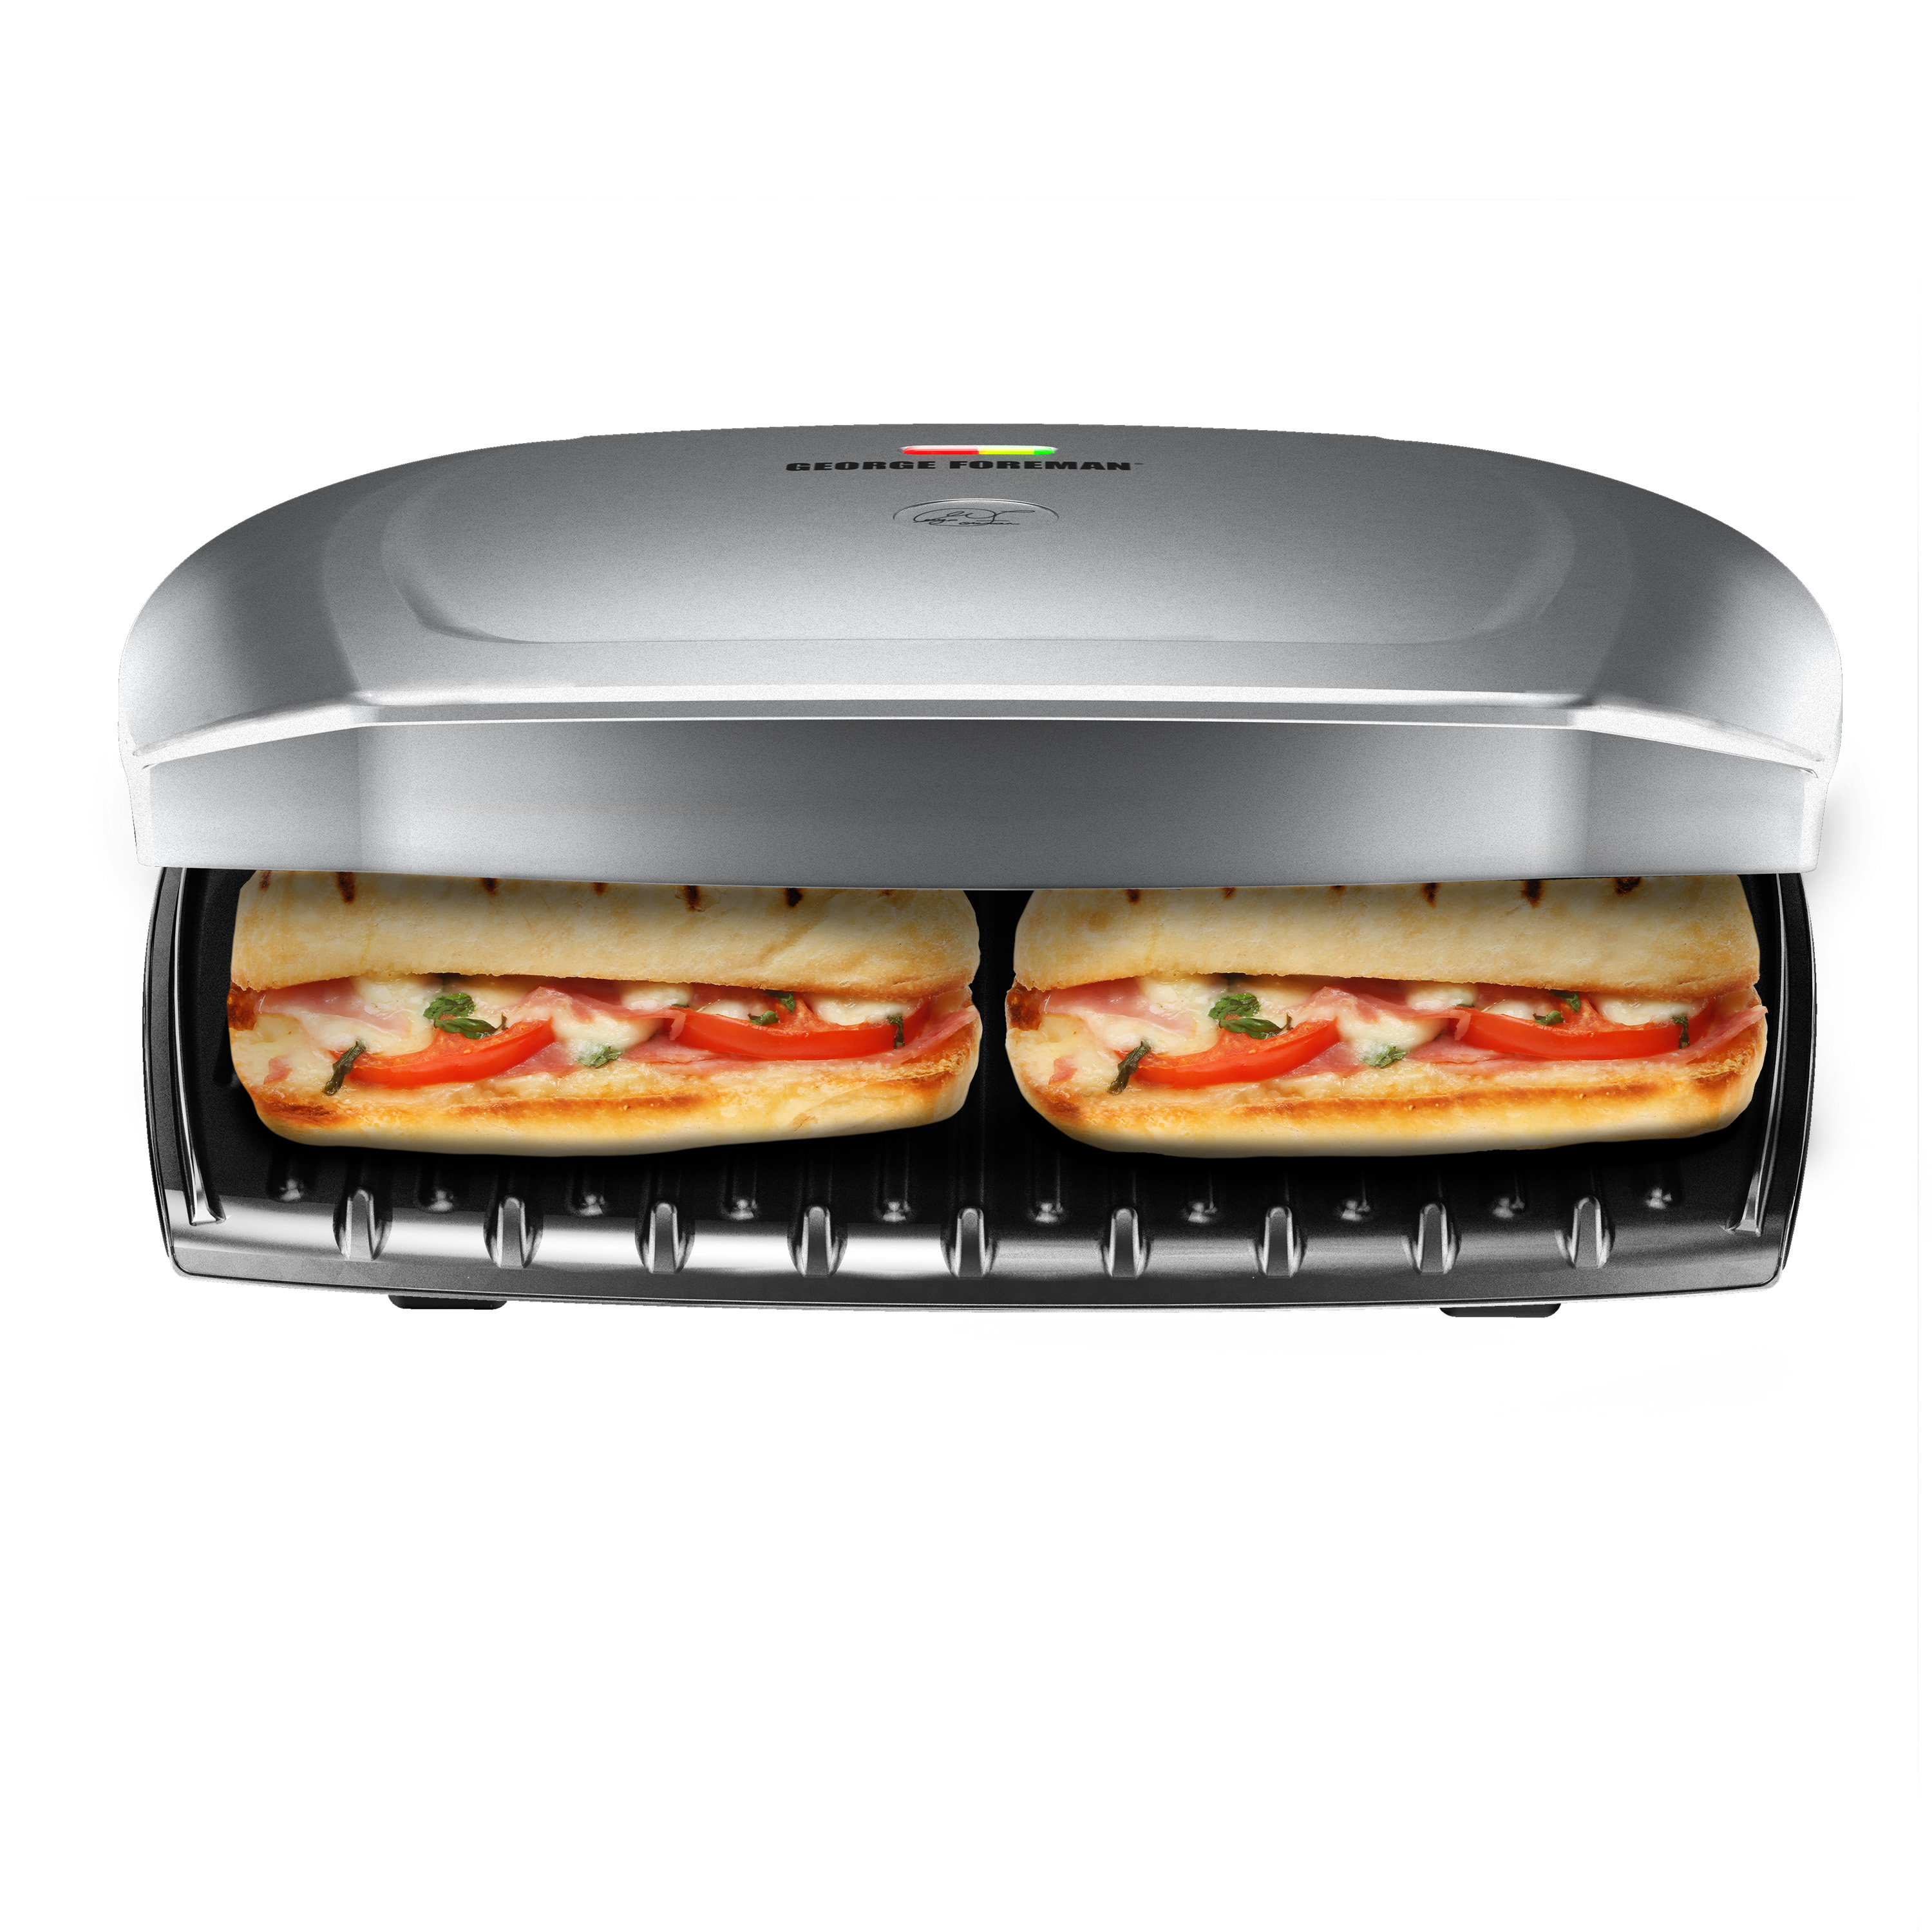 George Foreman 9-Serving Classic Plate Electric Indoor Grill and Panini Press, Platinum, GR2144P